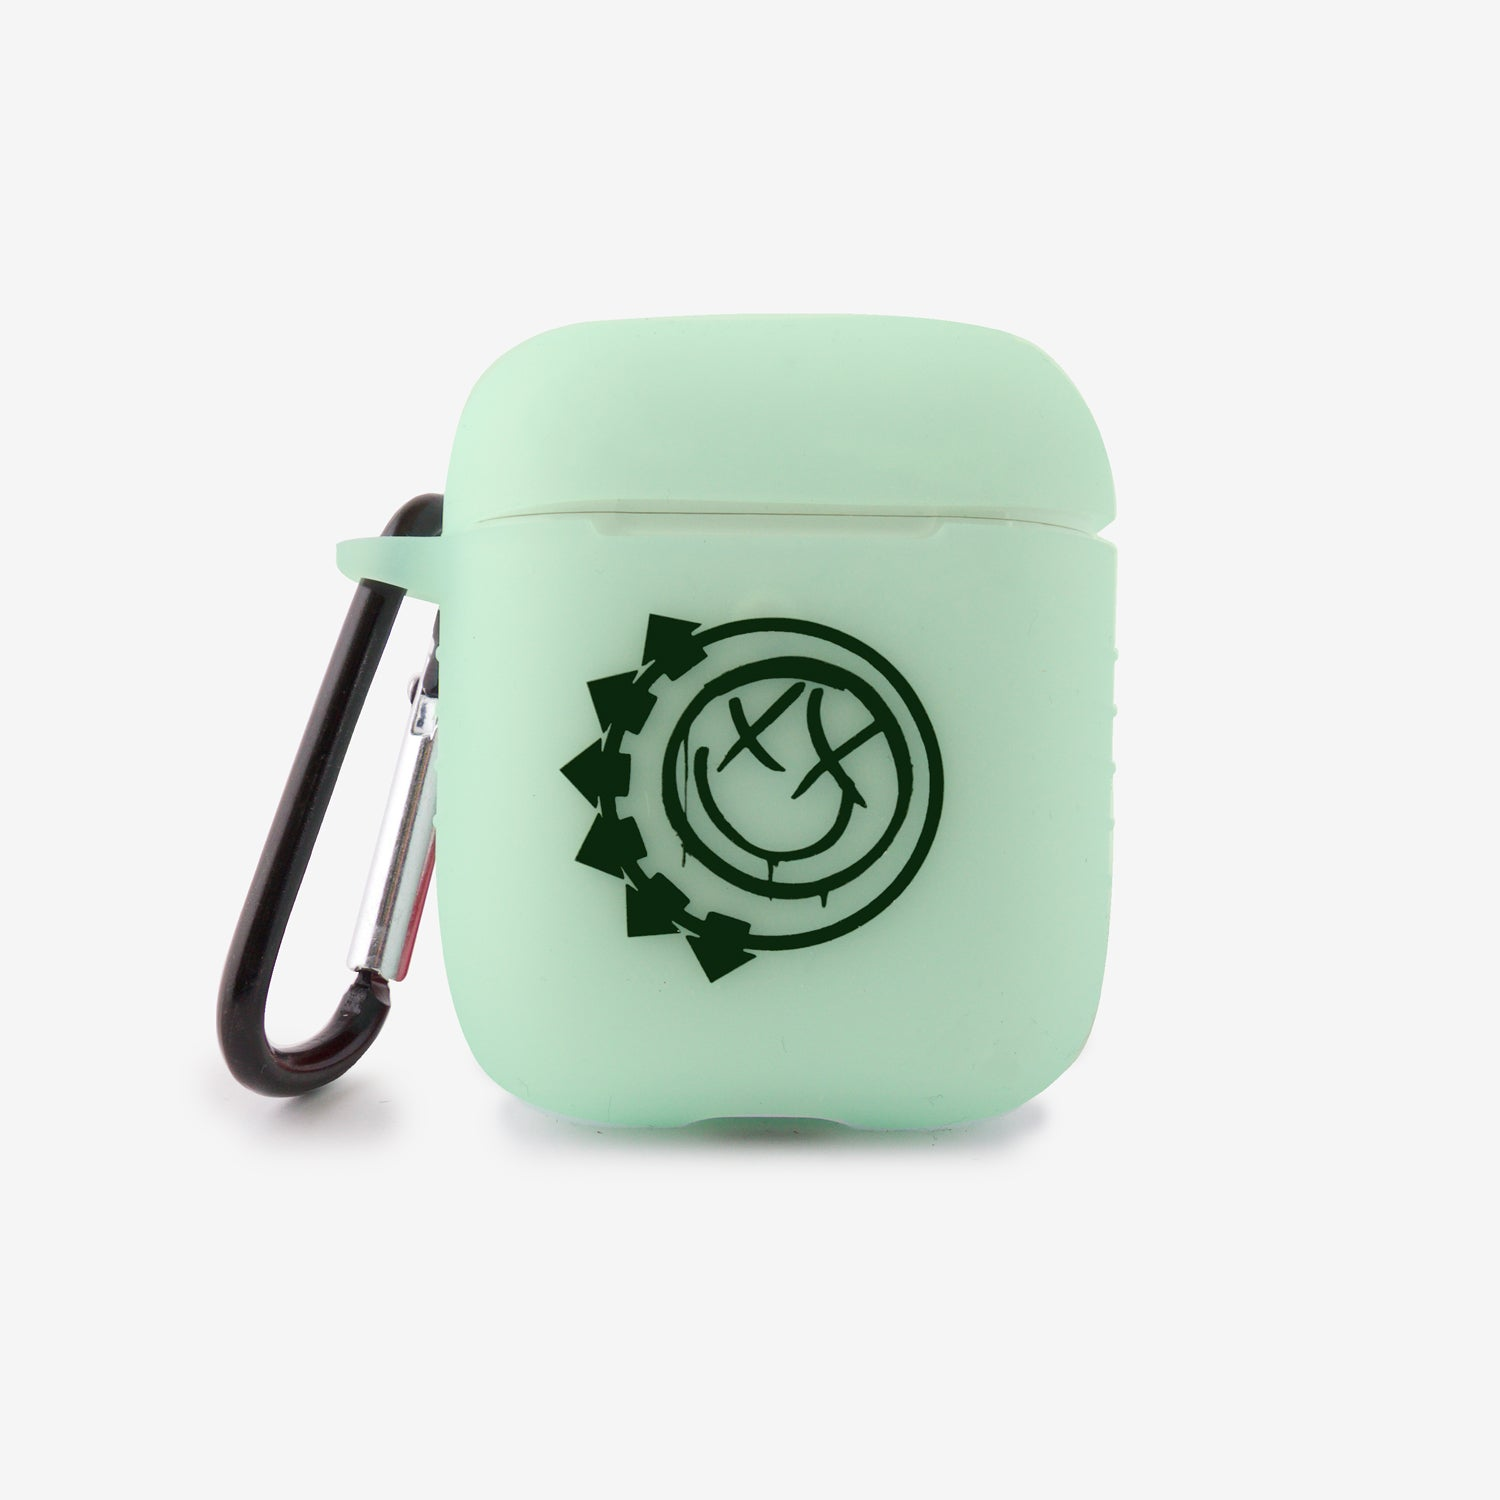 Blink 182 Smiley Airpods Case Blink 182 Official Online Store